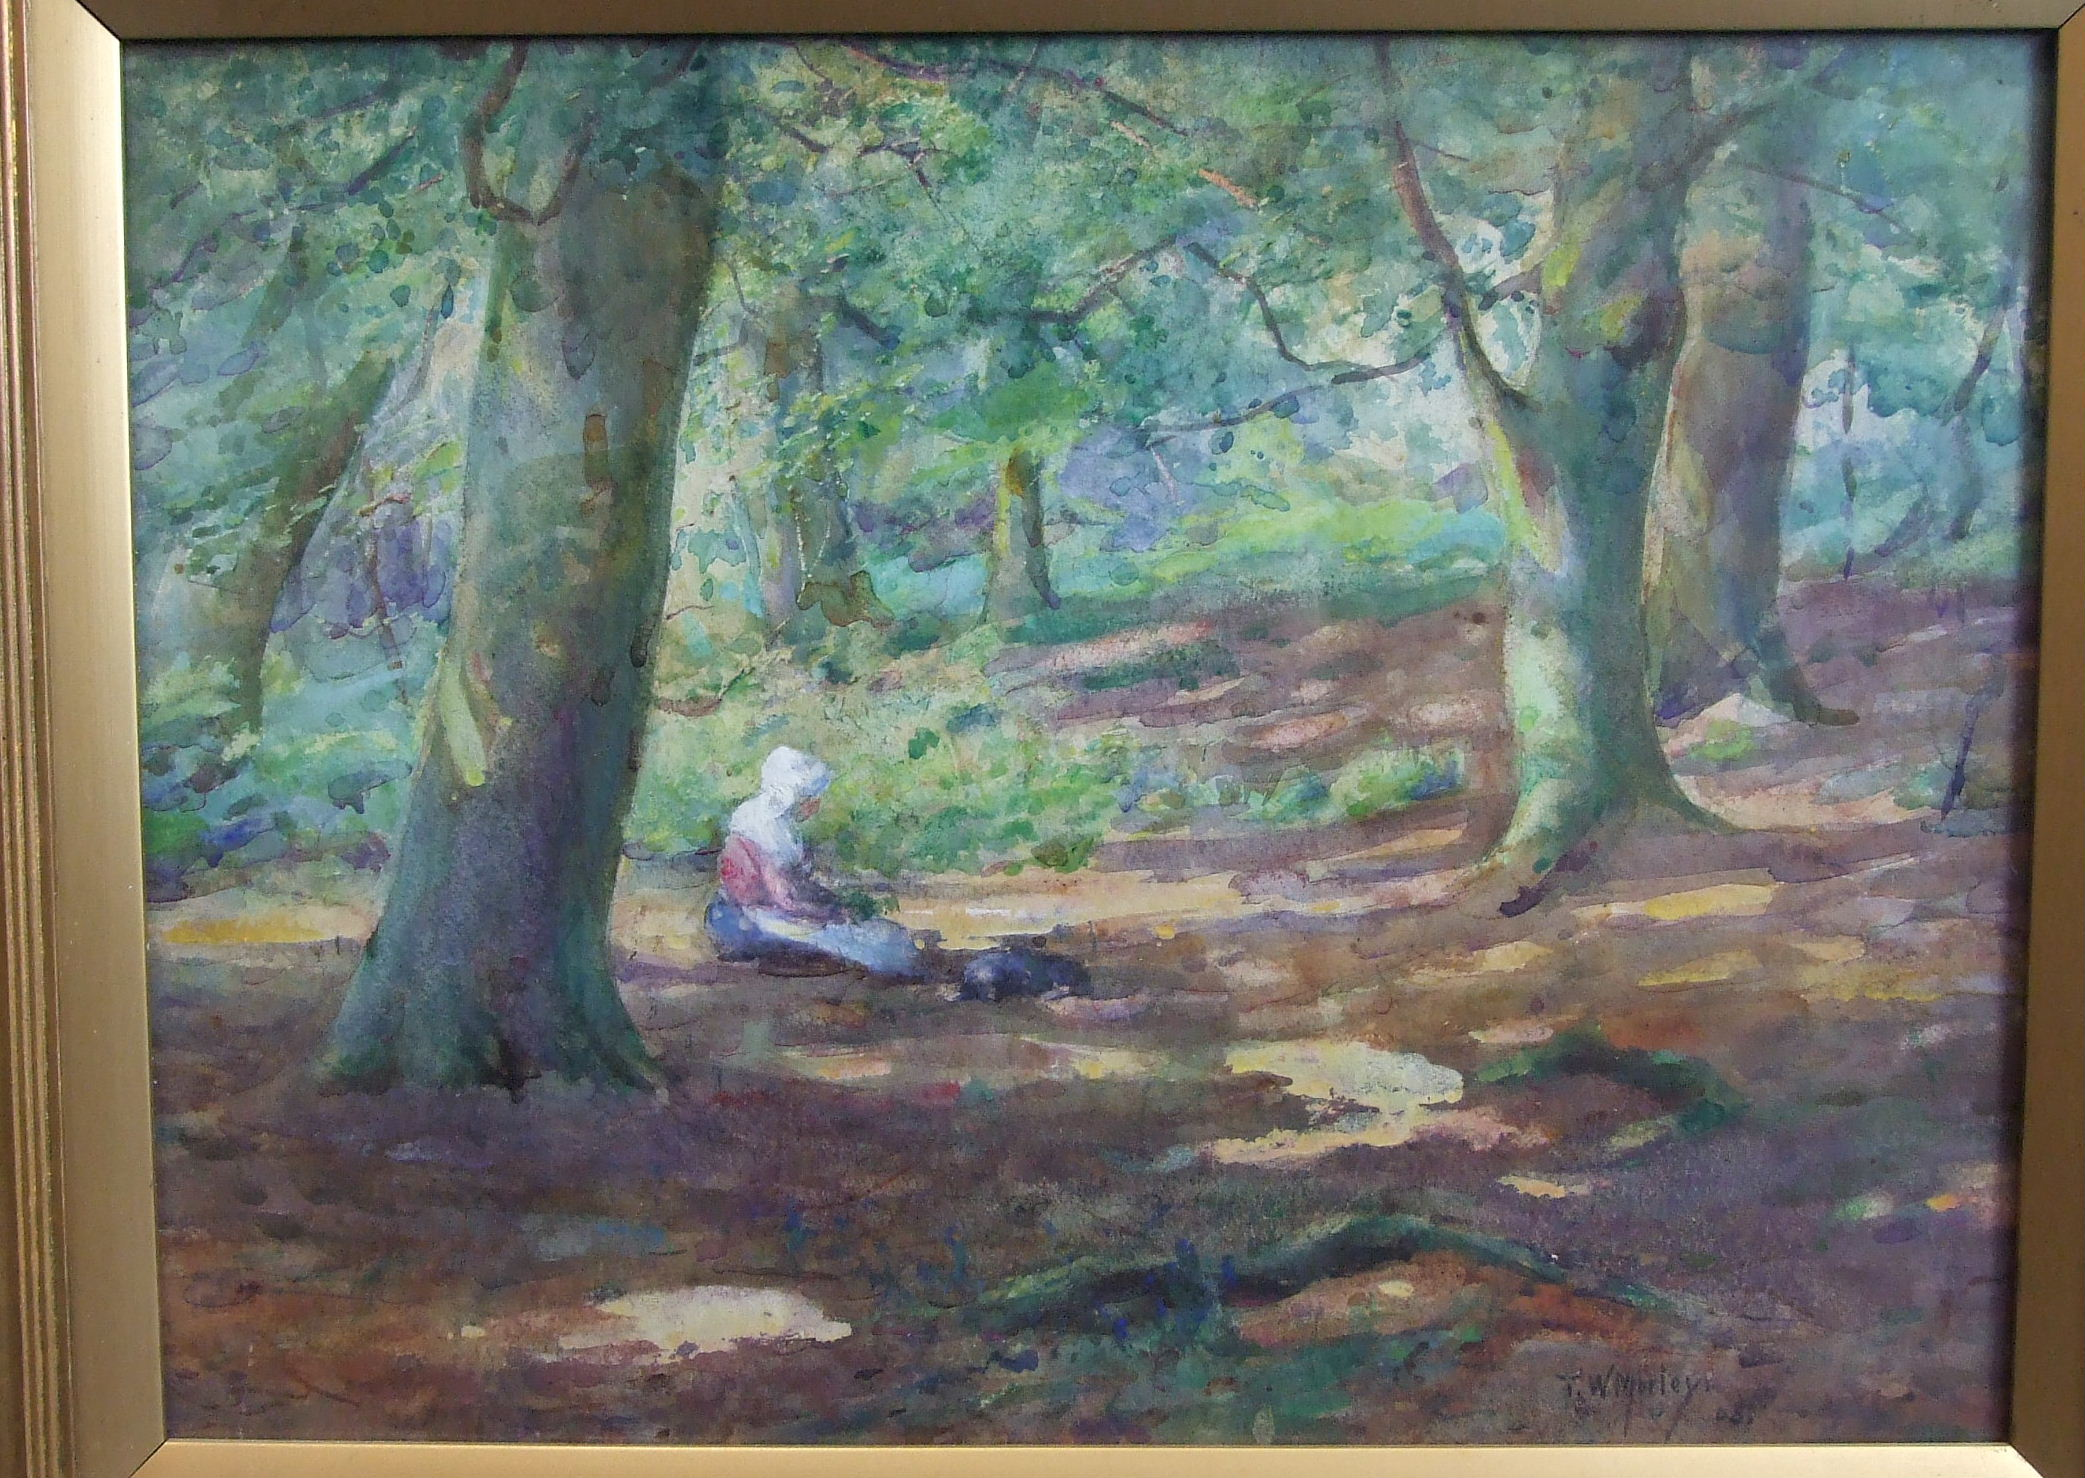 Lot 137 - Thomas William Morley (1859-1925) A WOMAN WEARING A WHITE BONNET, WITH A DOG, IN A WOODLAND GLADE